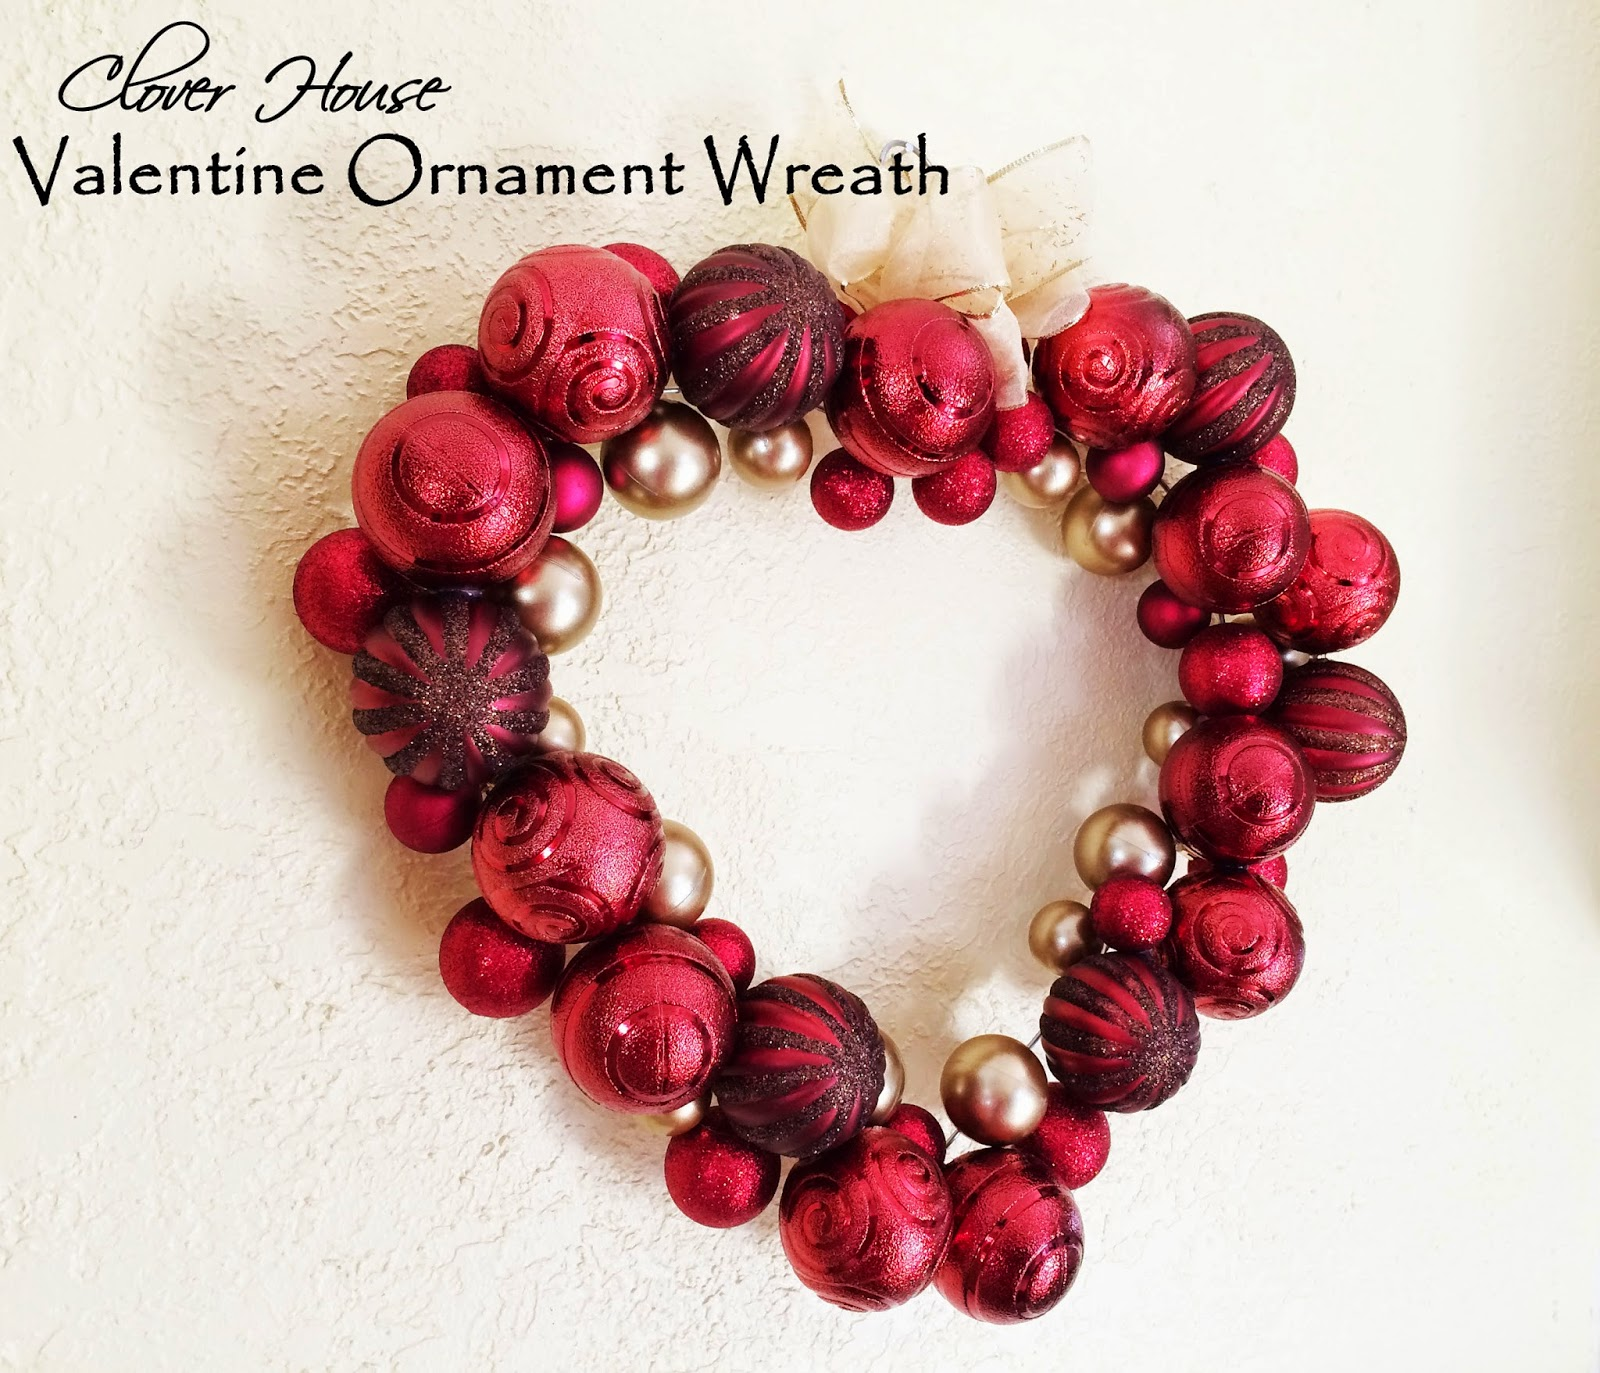 Clover House: Valentine Ornament Wreath - Using a Clothes Hanger